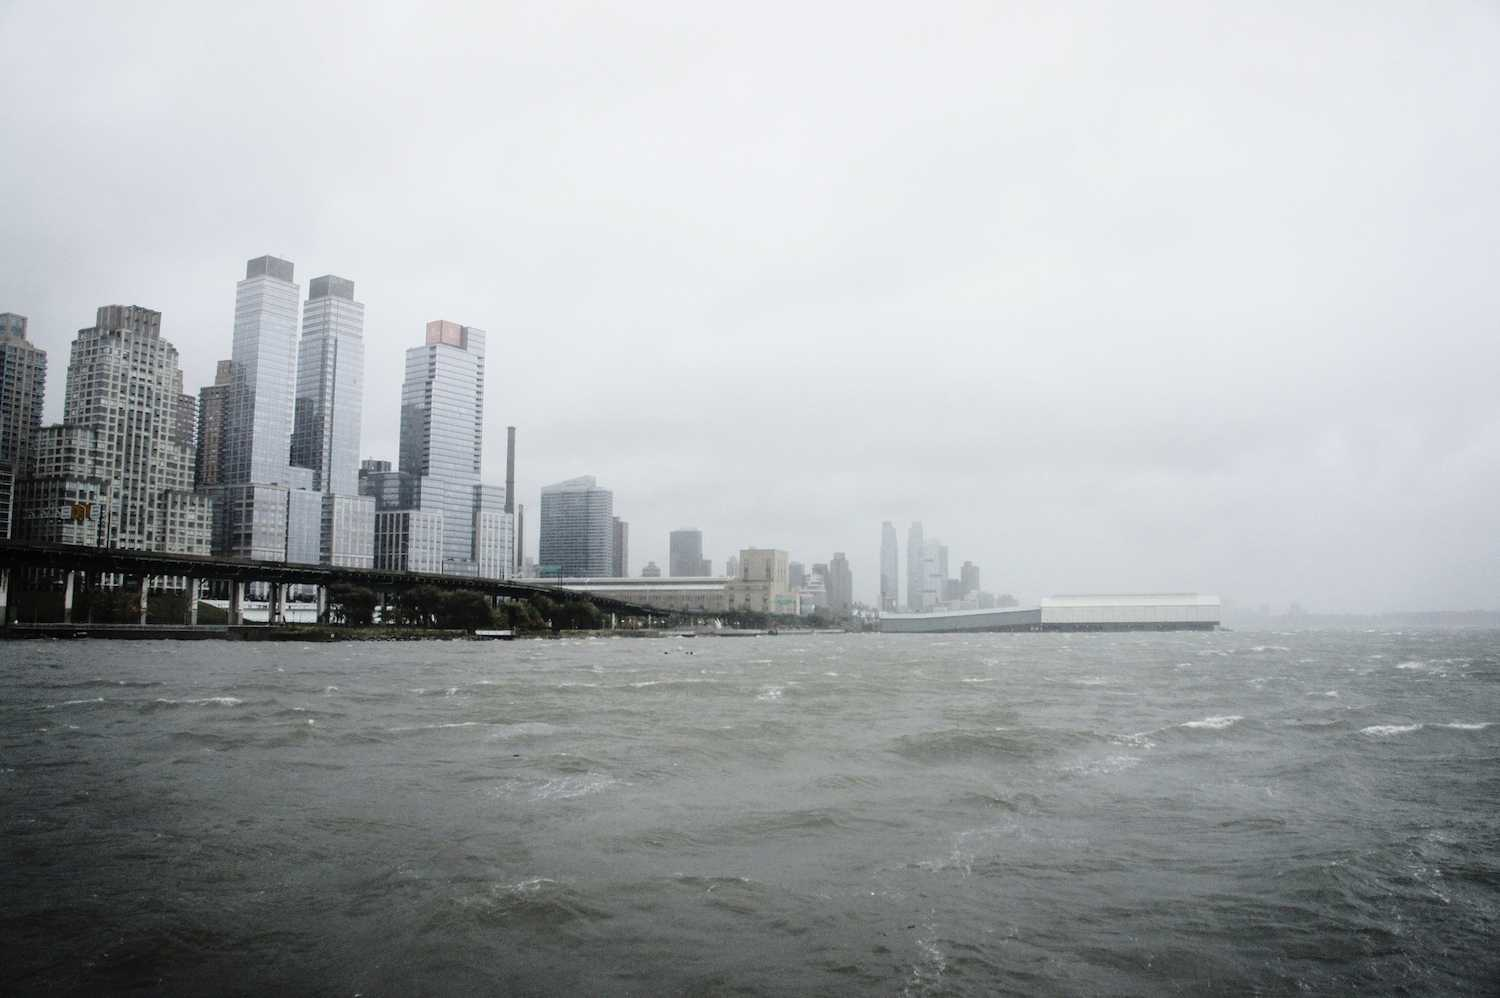 As Hurricane Sandy approached the East Coast and New York City on Oct. 29, here pictured around 2 p.m. at Riverside Park looking at the Hudson River, Fordham residents and commuters bunkered down and prepared for possible flooding and power outages.